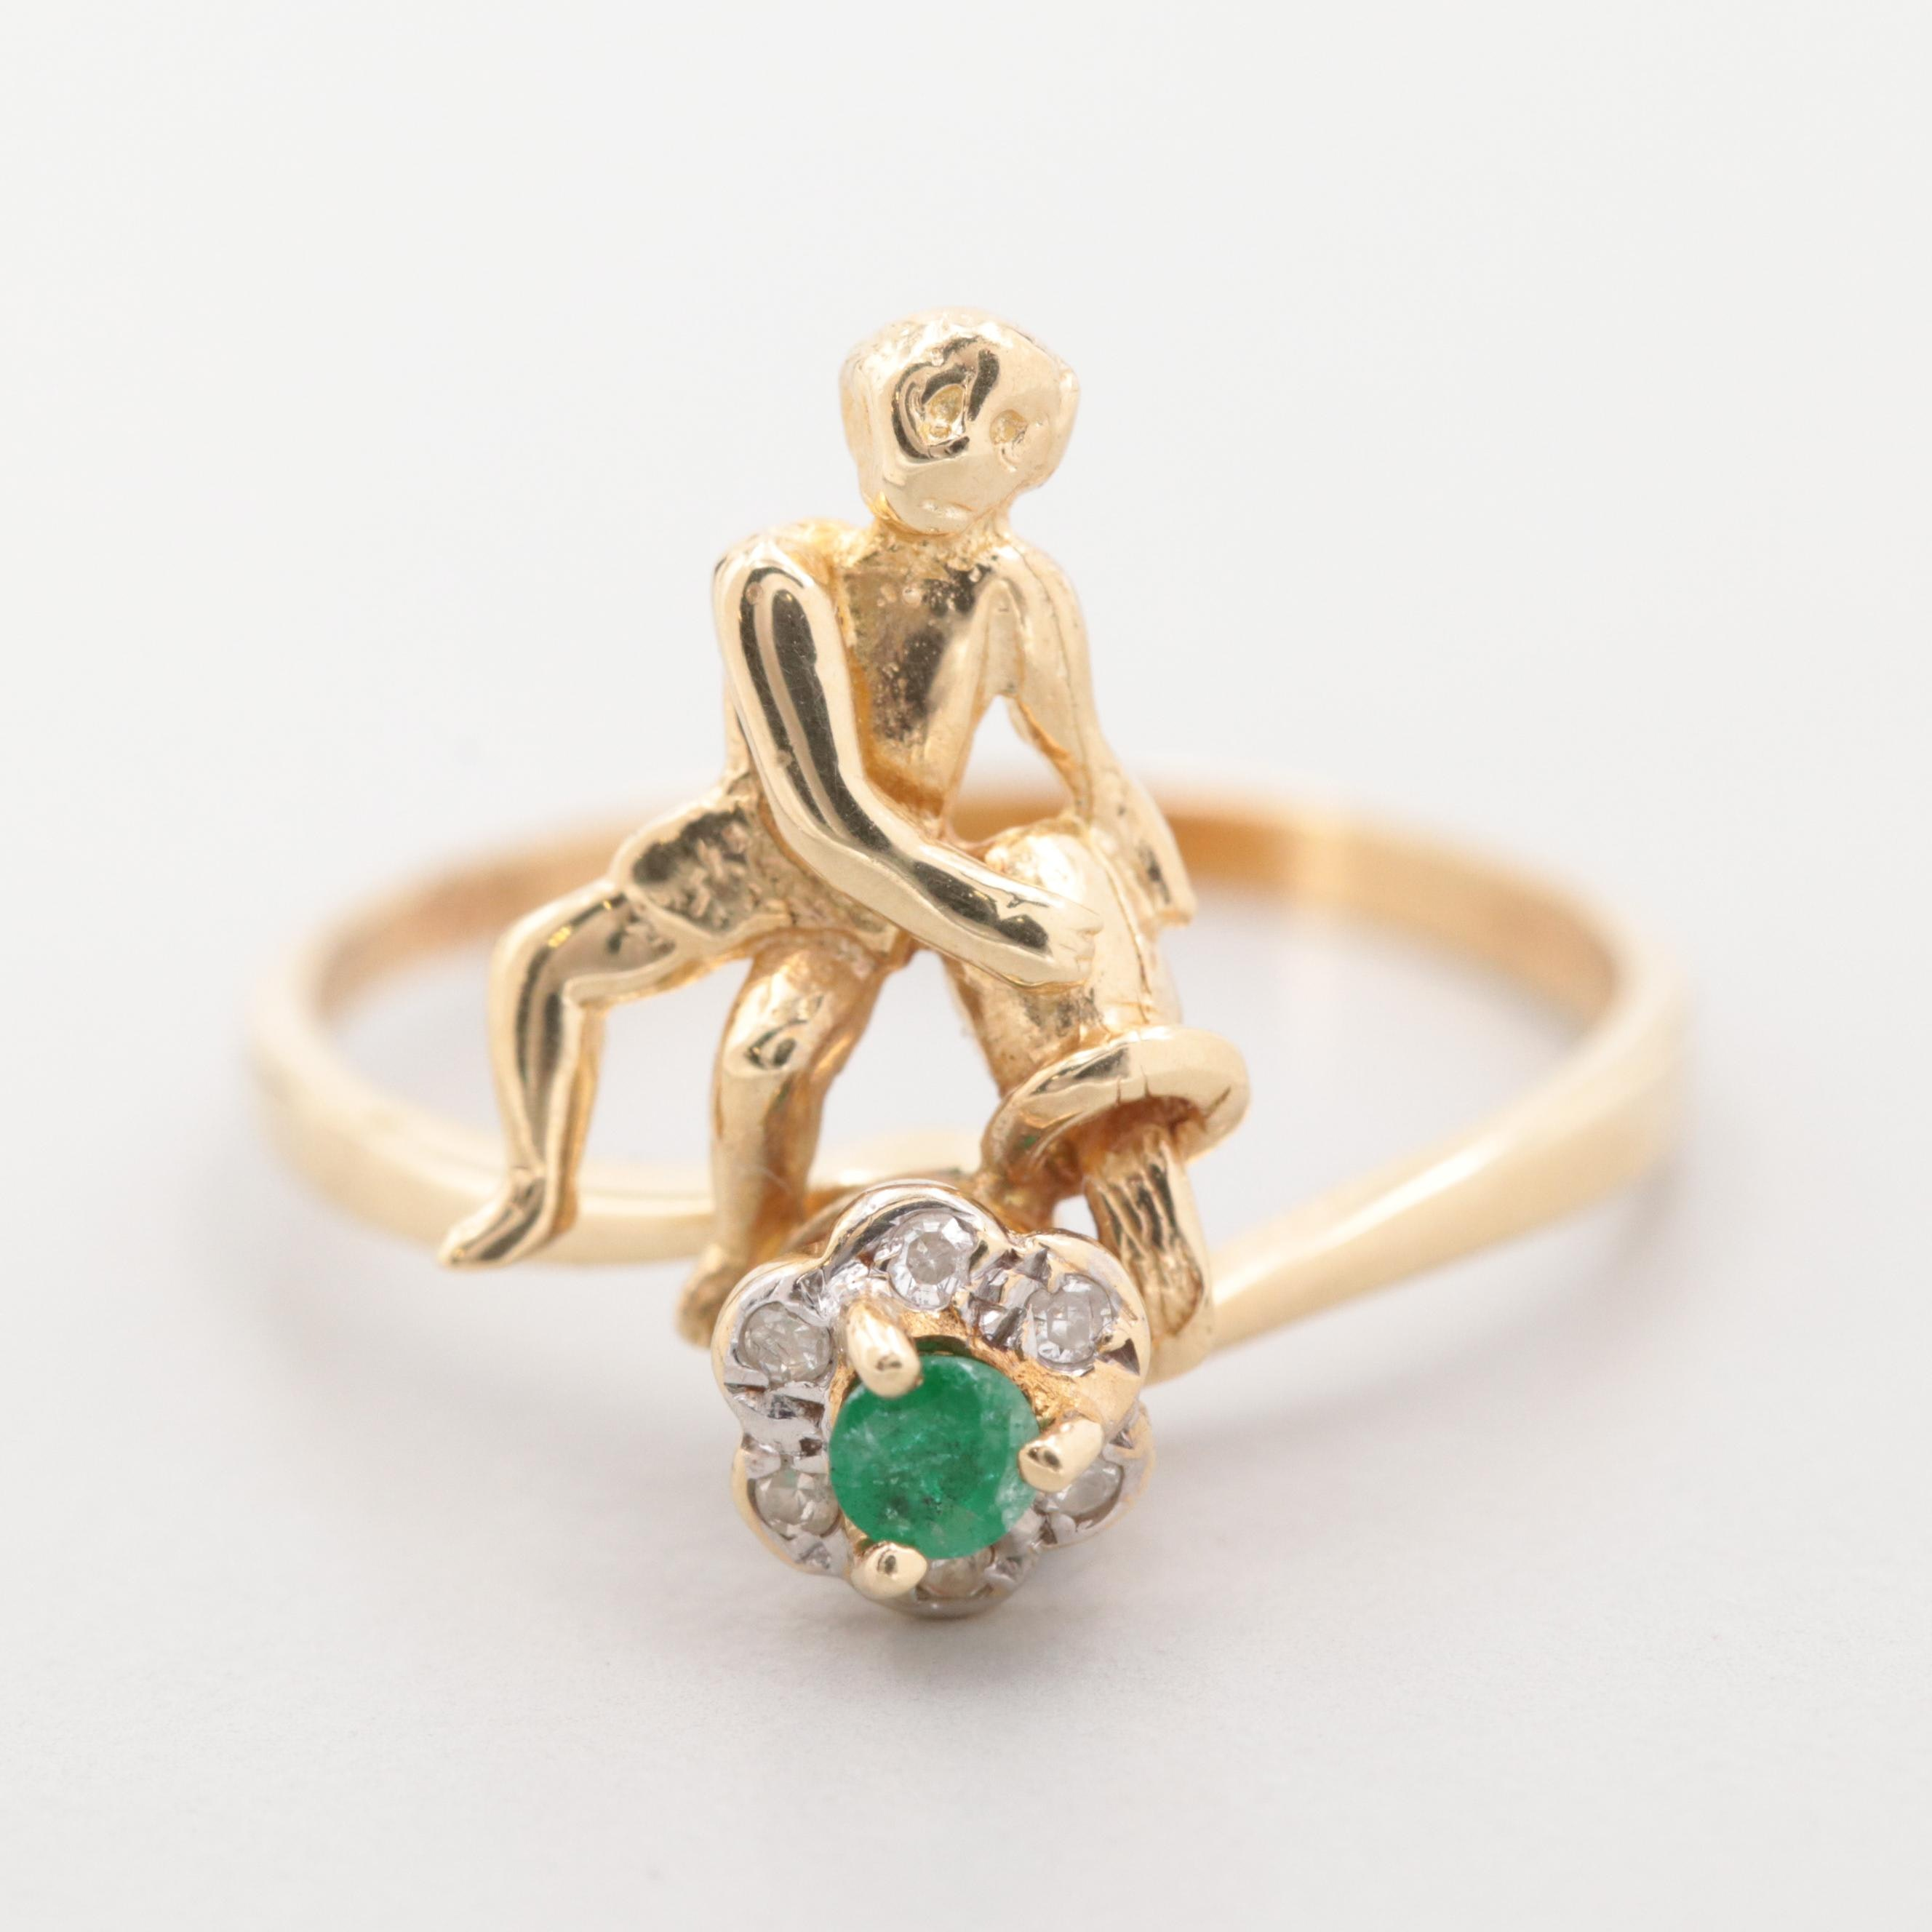 14K Yellow Gold Emerald and Diamond Articulated Ring